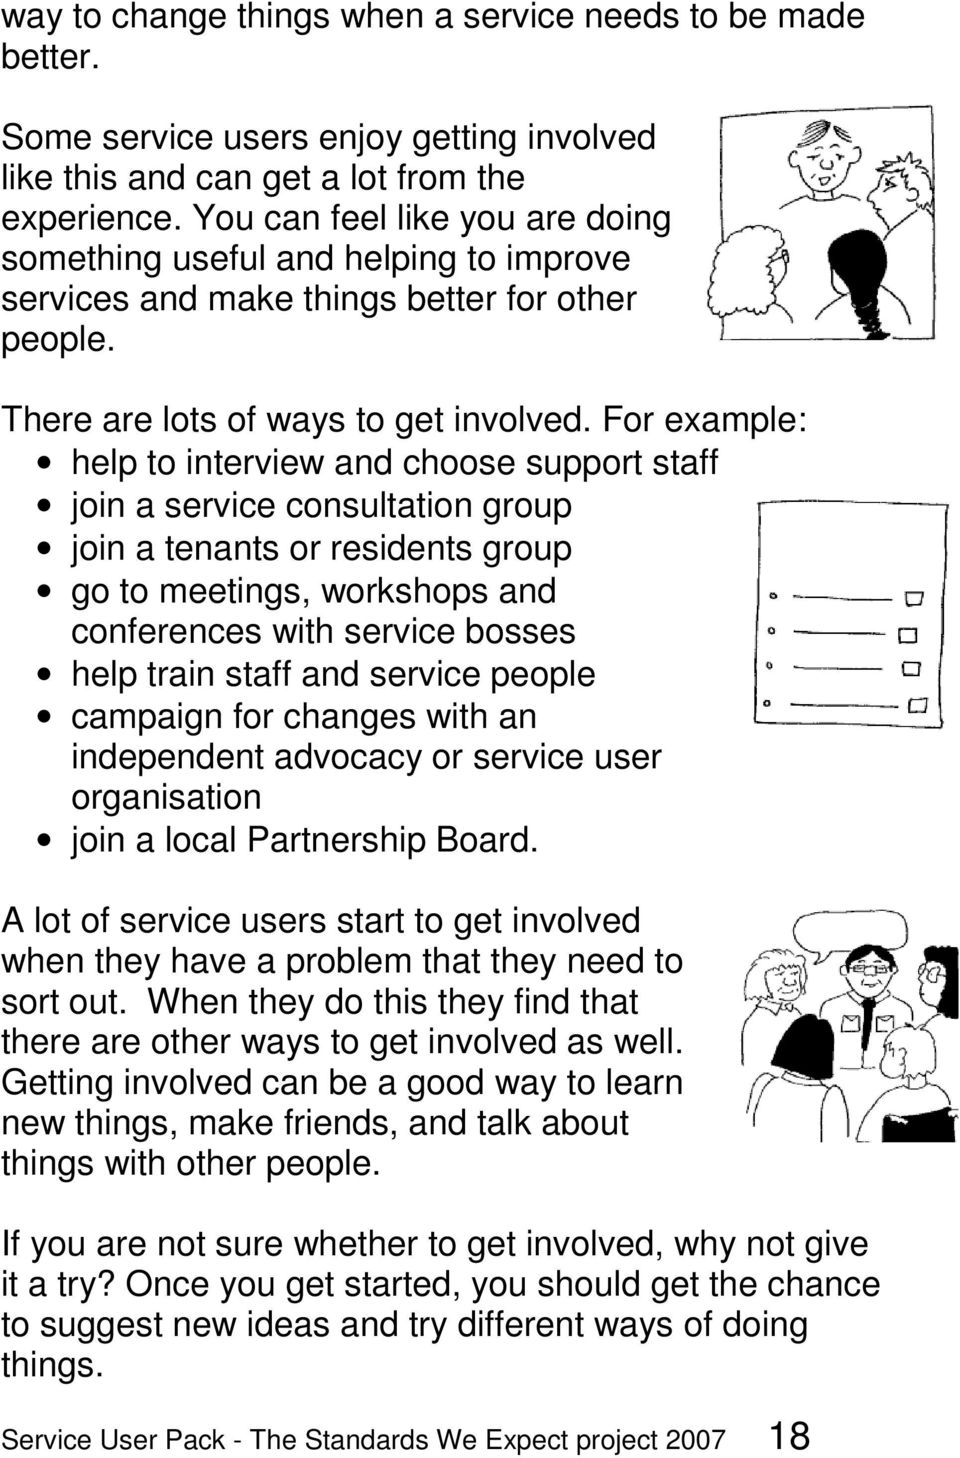 For example: help to interview and choose support staff join a service consultation group join a tenants or residents group go to meetings, workshops and conferences with service bosses help train